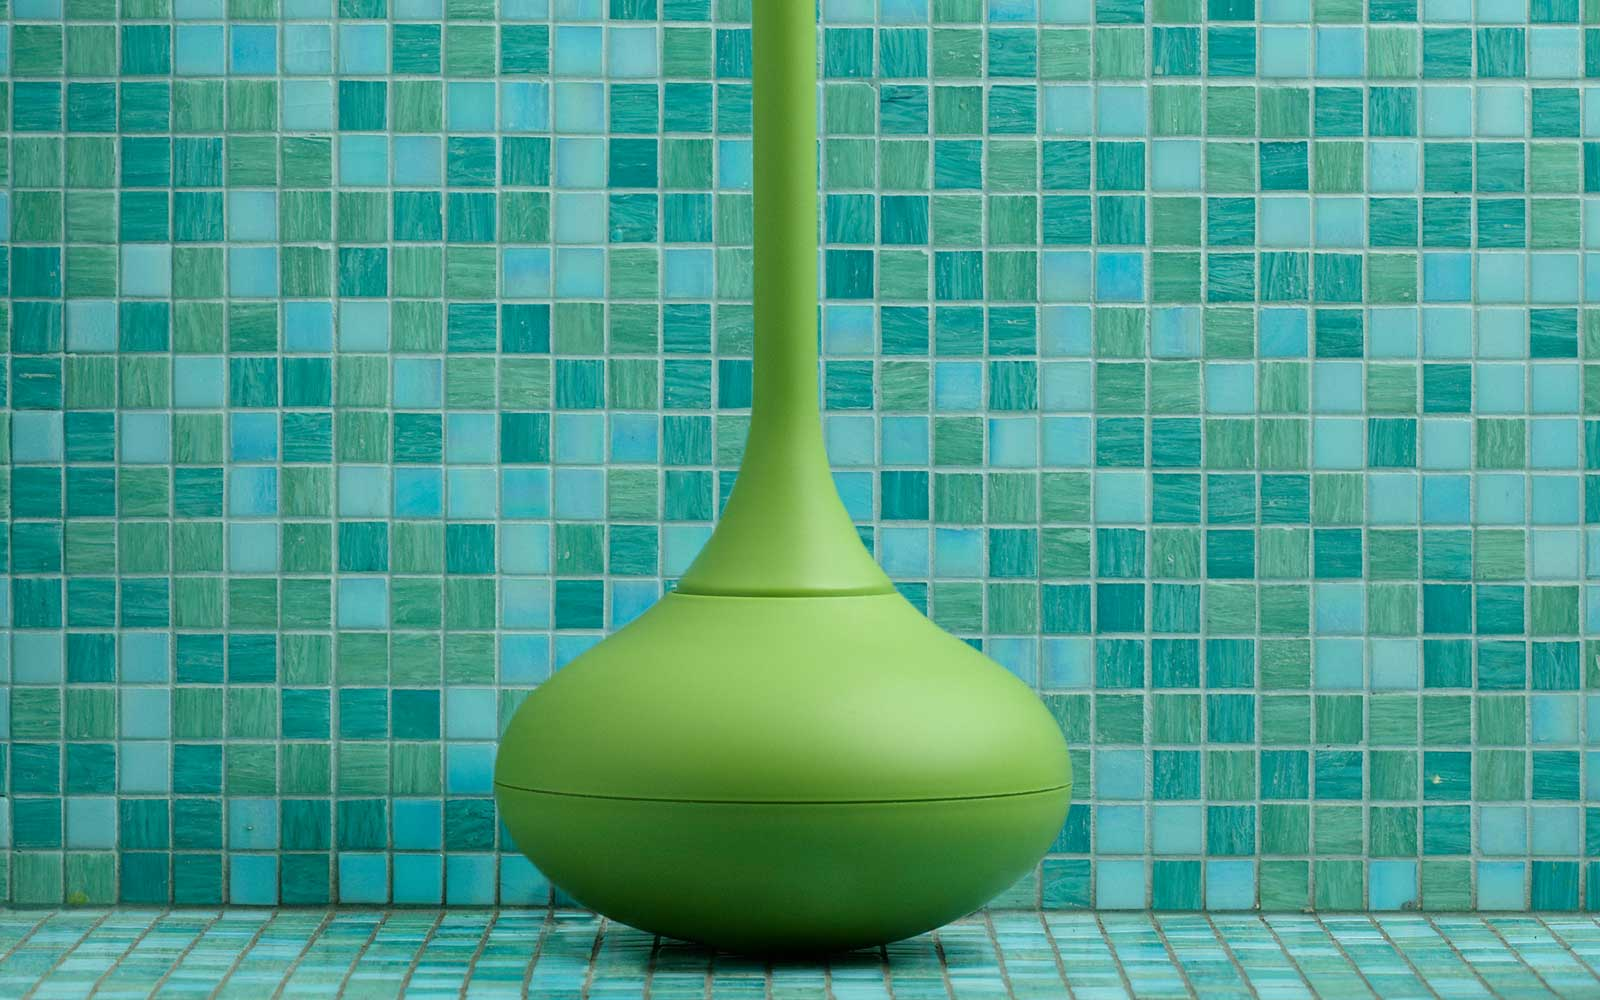 Ballo toilet brush front green mosaic background